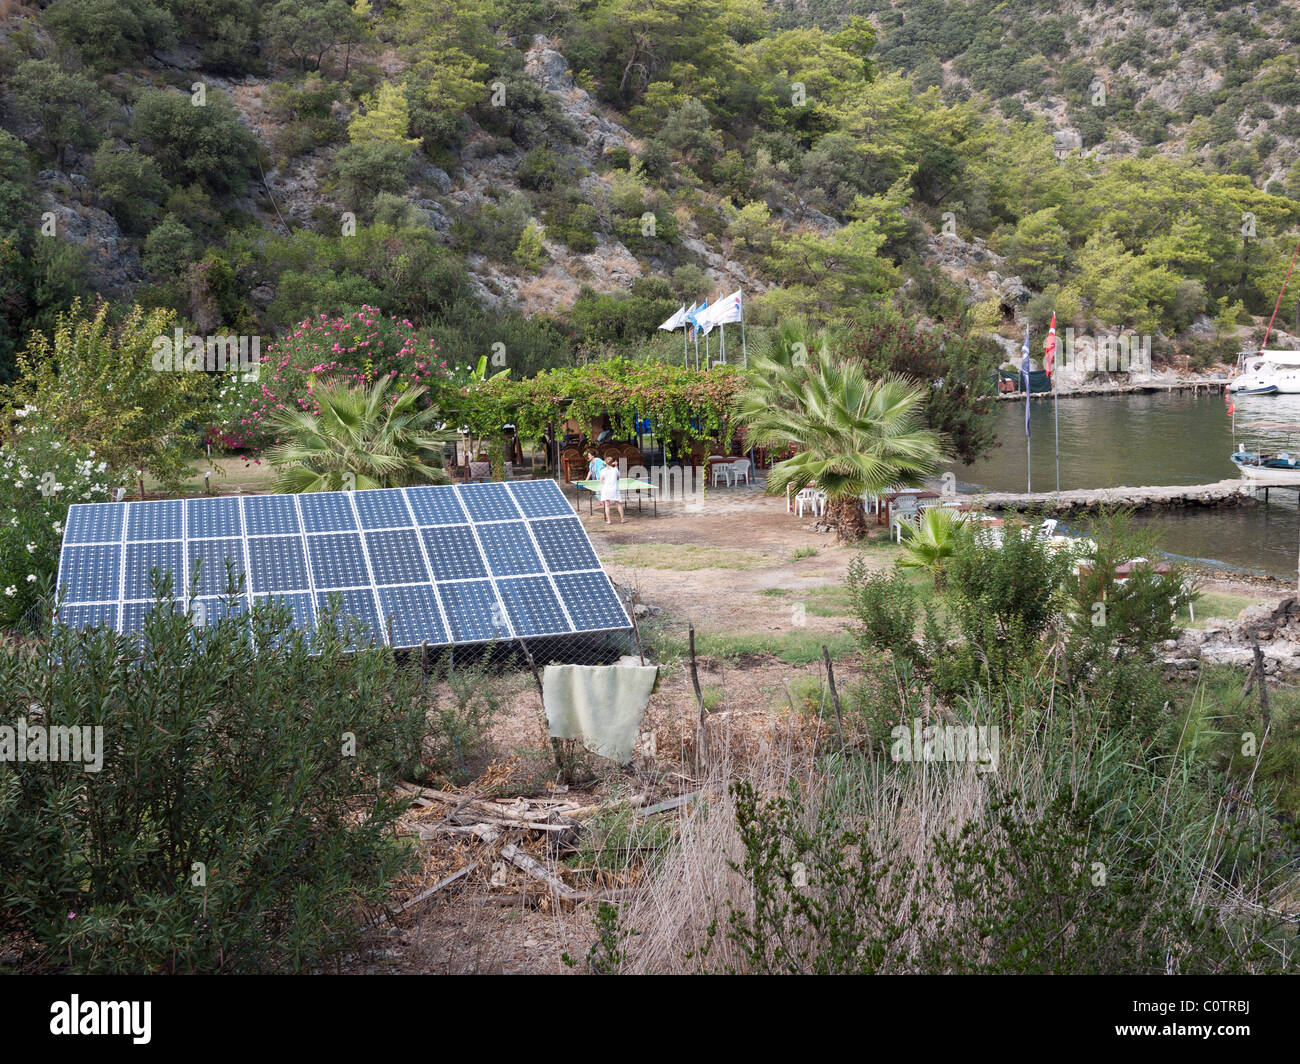 Solar panels to generate electricity for a remote beach restaurant in Tomb bay on the Lycian coast Turkey - Stock Image